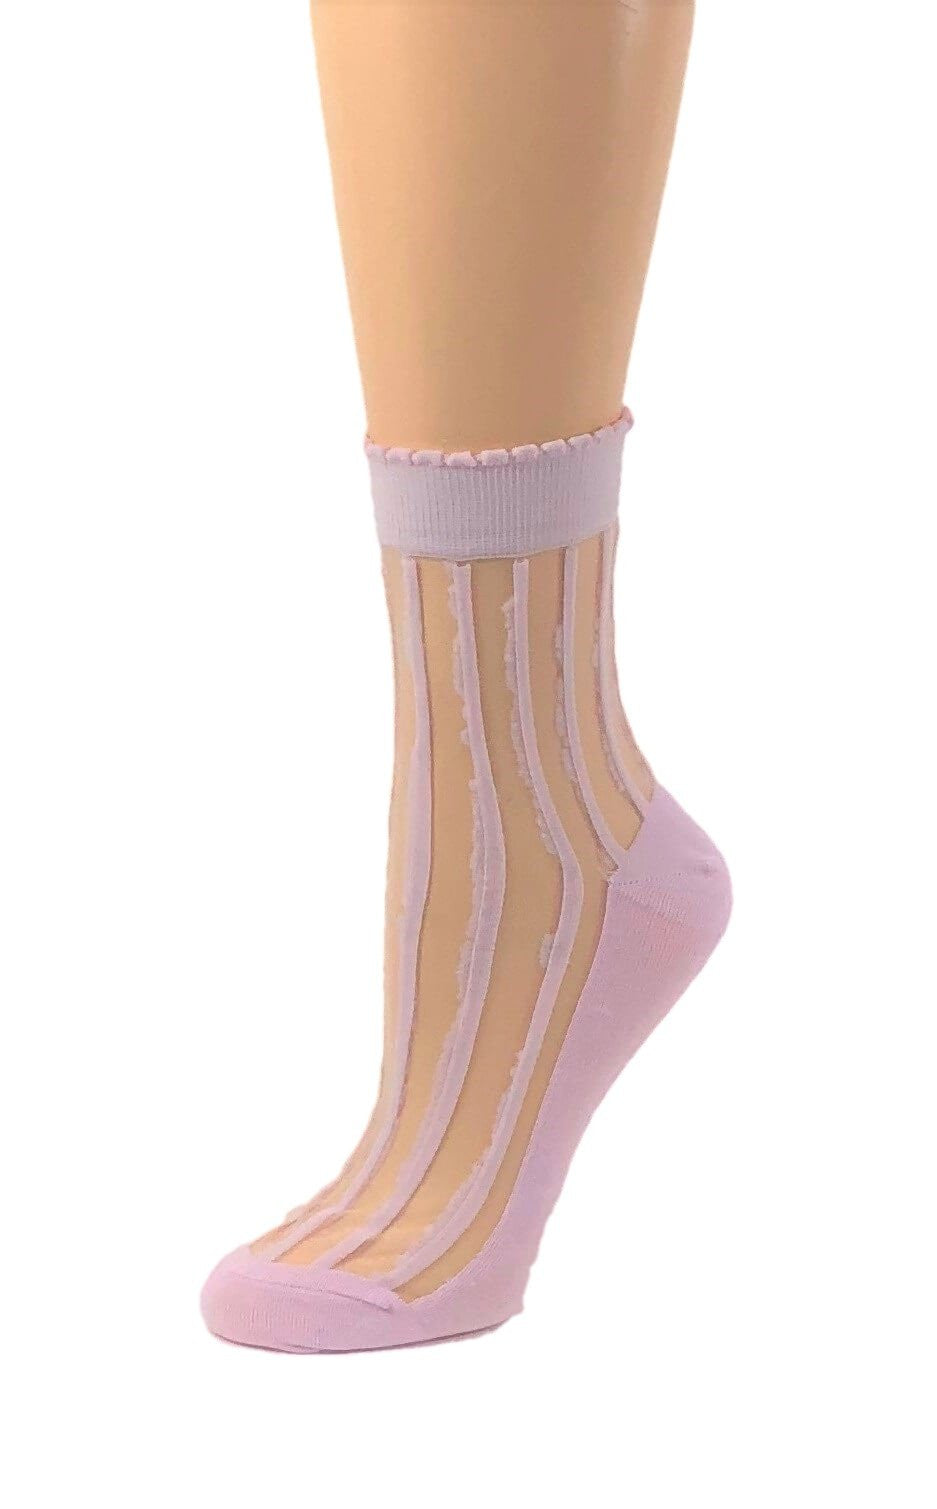 Purple Striped Sheer Socks - Global Trendz Fashion®